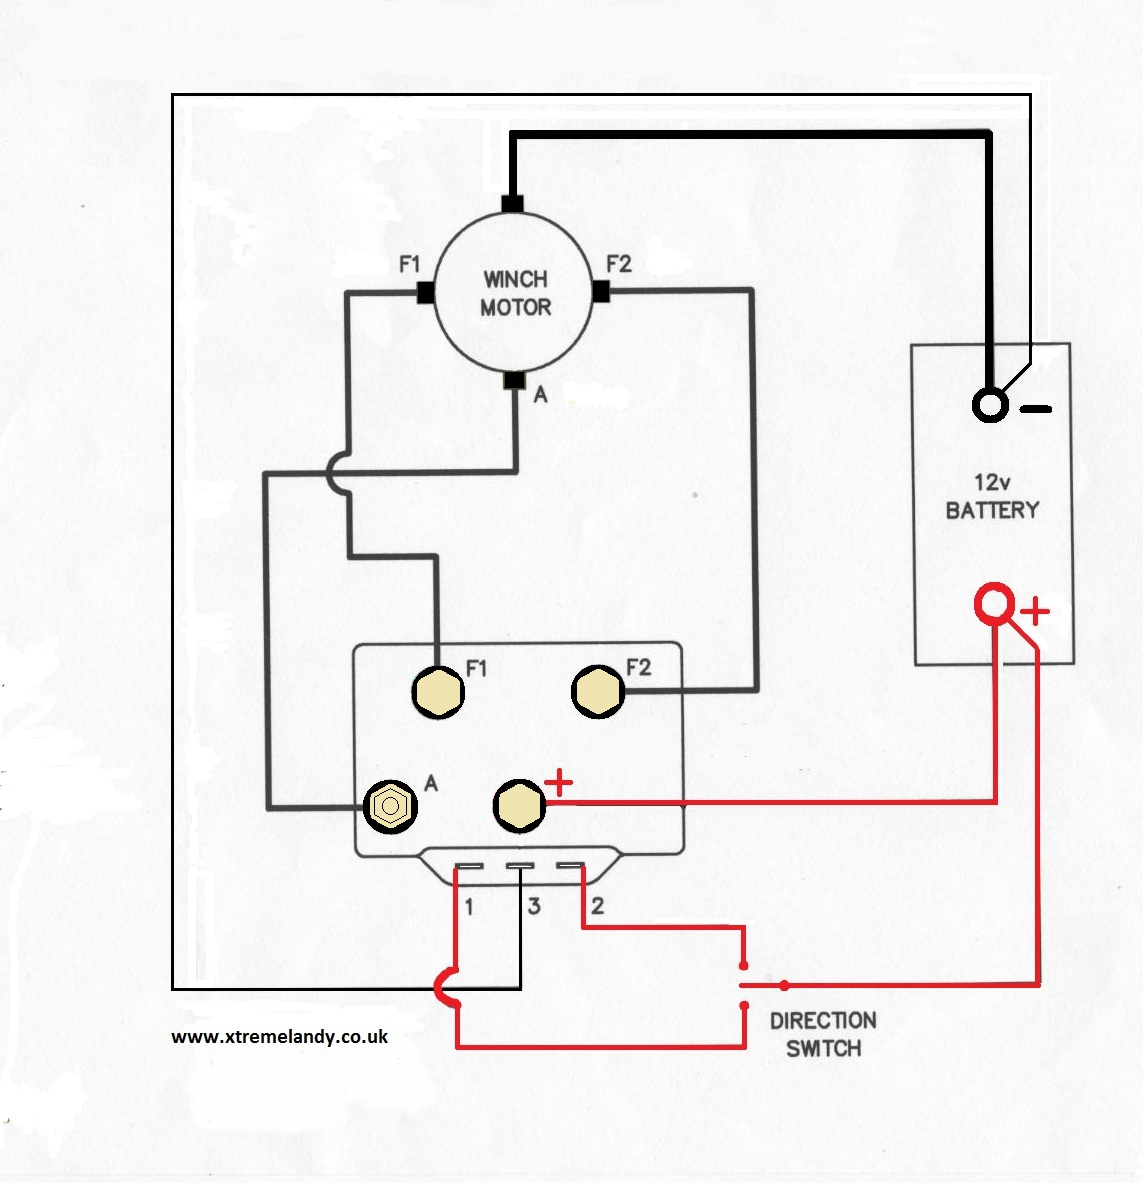 able manuals simple relay wiring diagram image acircmiddot winch remote wiring 3 and 5 pin diagrams image acircmiddot albright simple wiring image